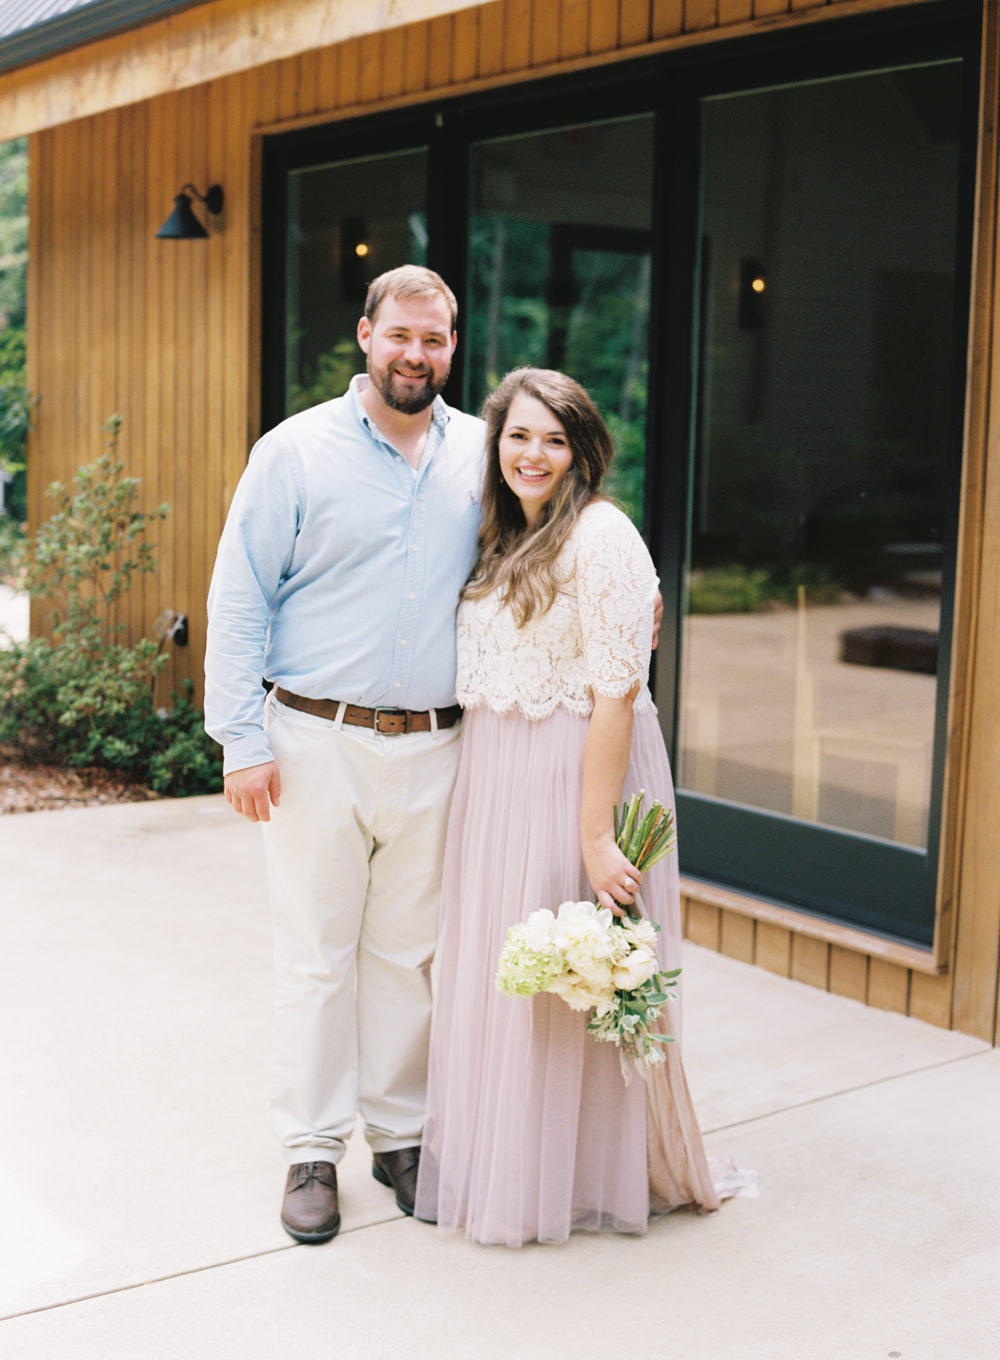 When Katie Asked Me To Photograph Her Wedding I Knew It Would Be Unique Is A Planner And Sean Cook At Two Separate Wineries In Dahlonega